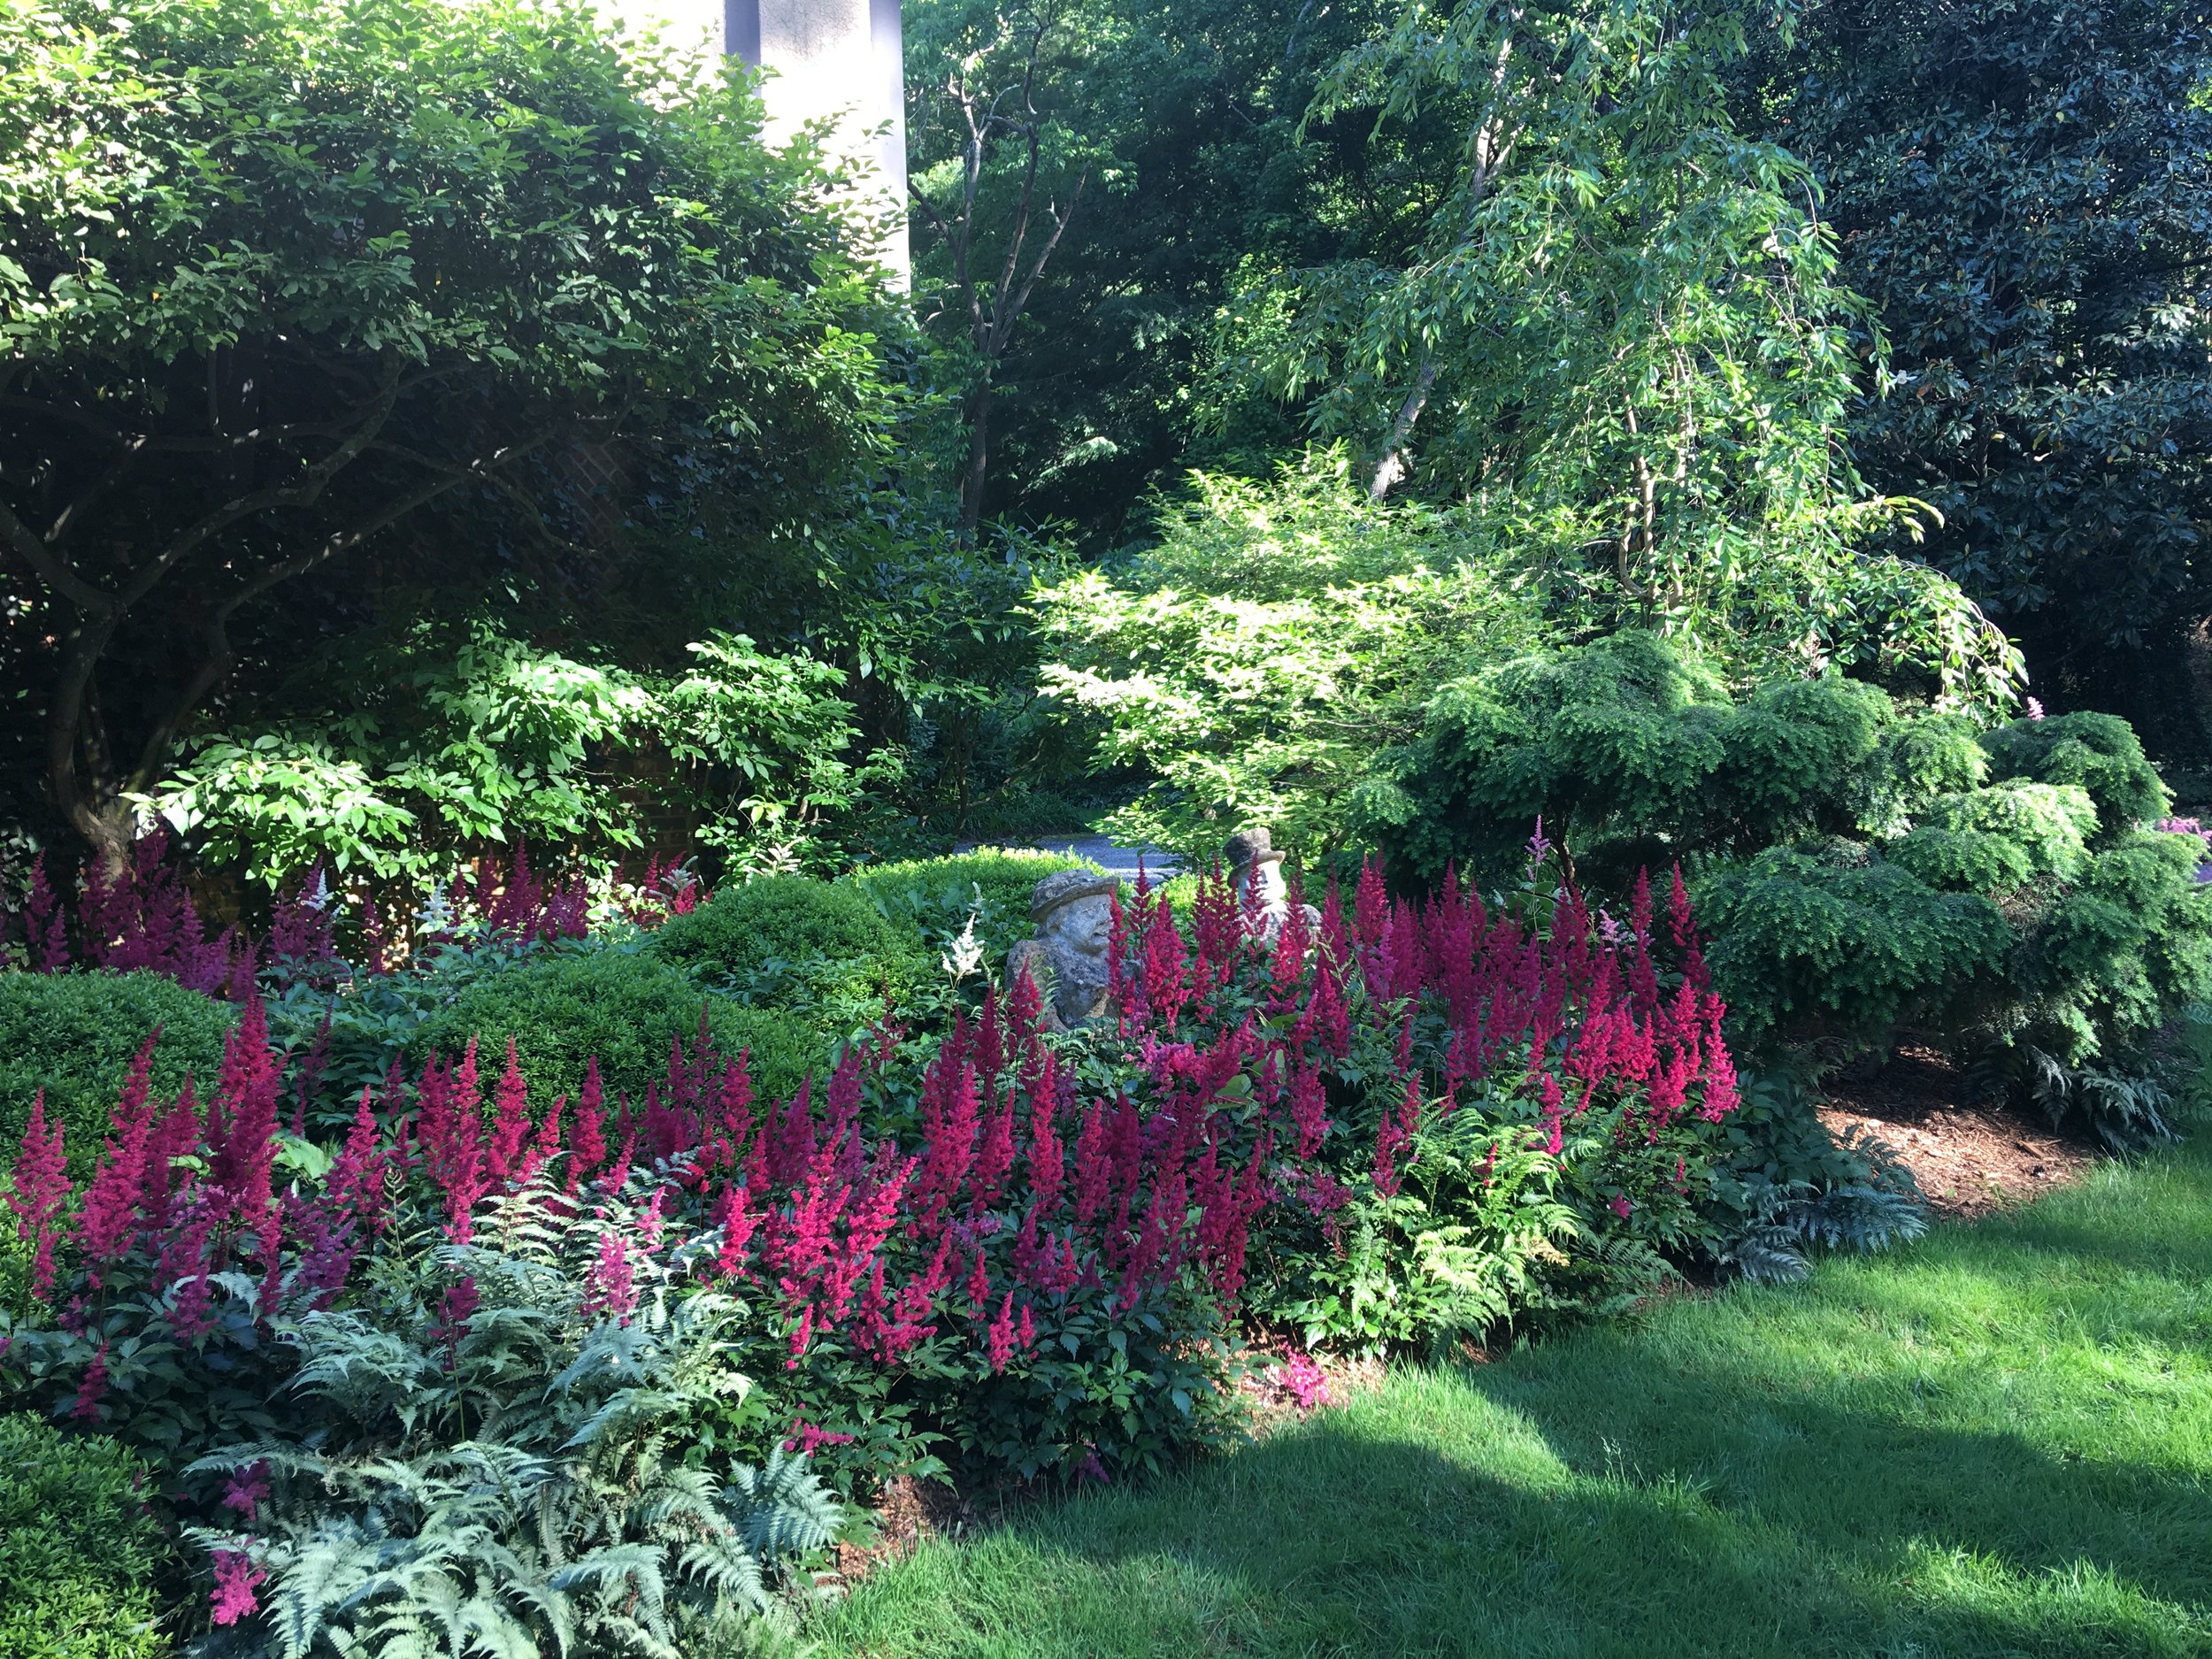 Astilbe 'Red Fanal', weeping hemlock, and boxwood